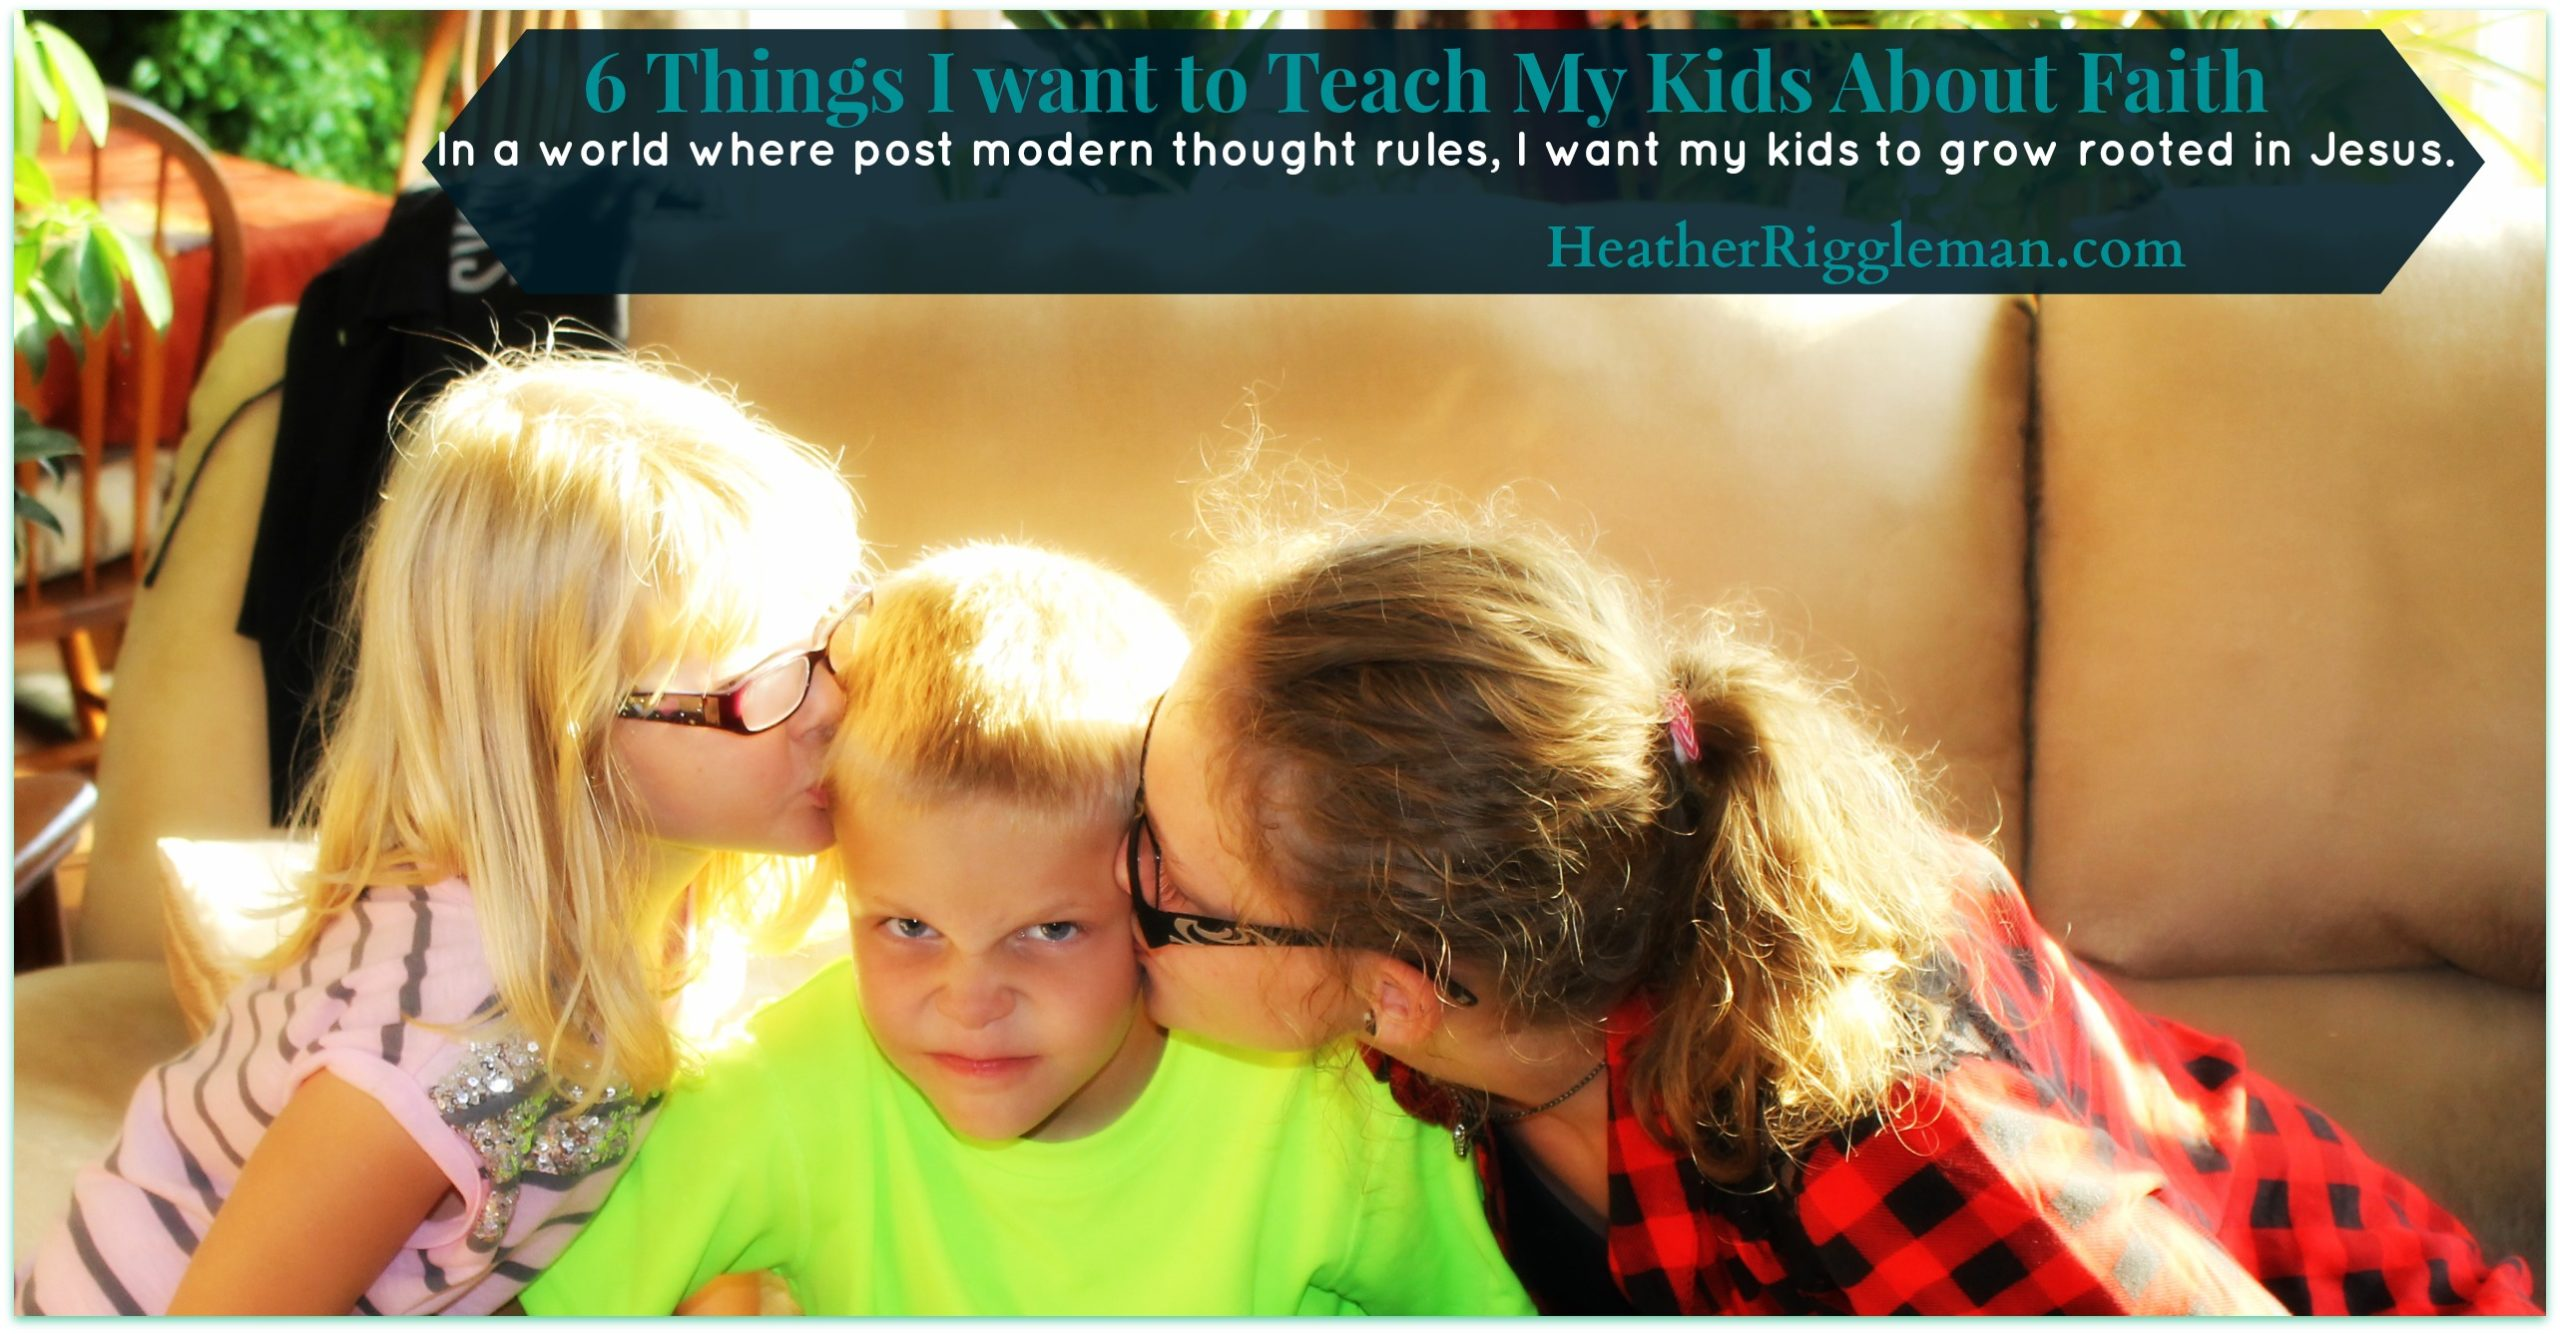 6 Truths I Want to Teach My Kids About Faith